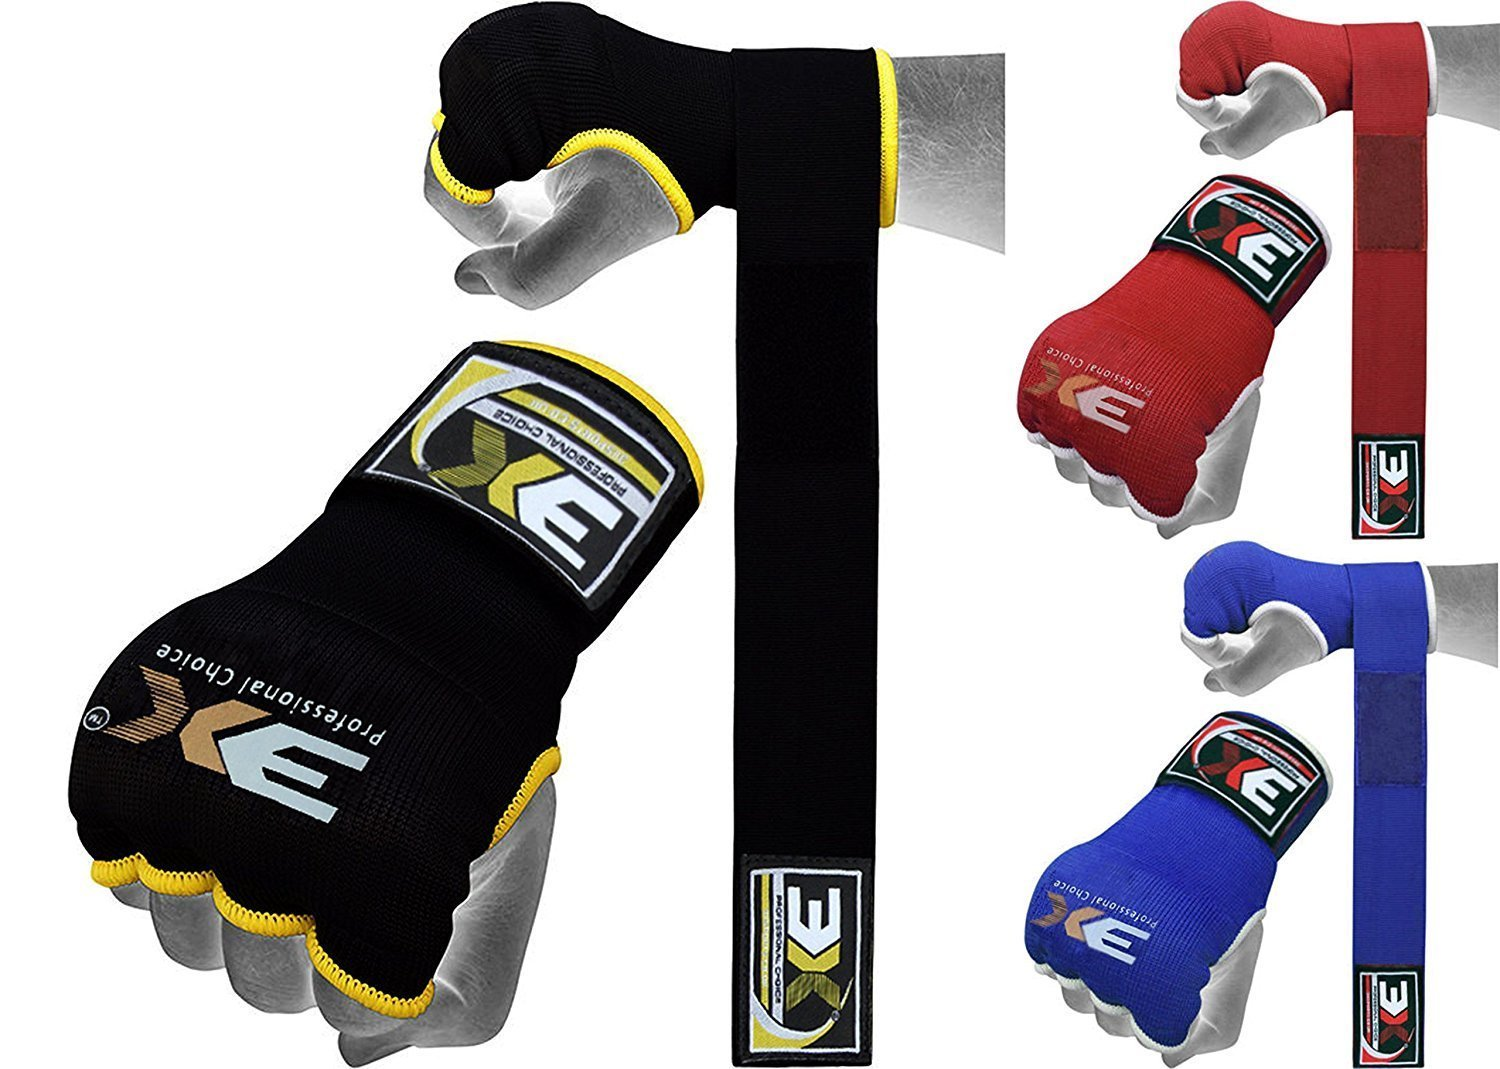 3X Professional Choice Hand Wraps Grappling Gloves MMA Martial Arts Muay THai Kick Boxing Inner Quick Wrist Wrap Bandages Gel Padded 3X Sports